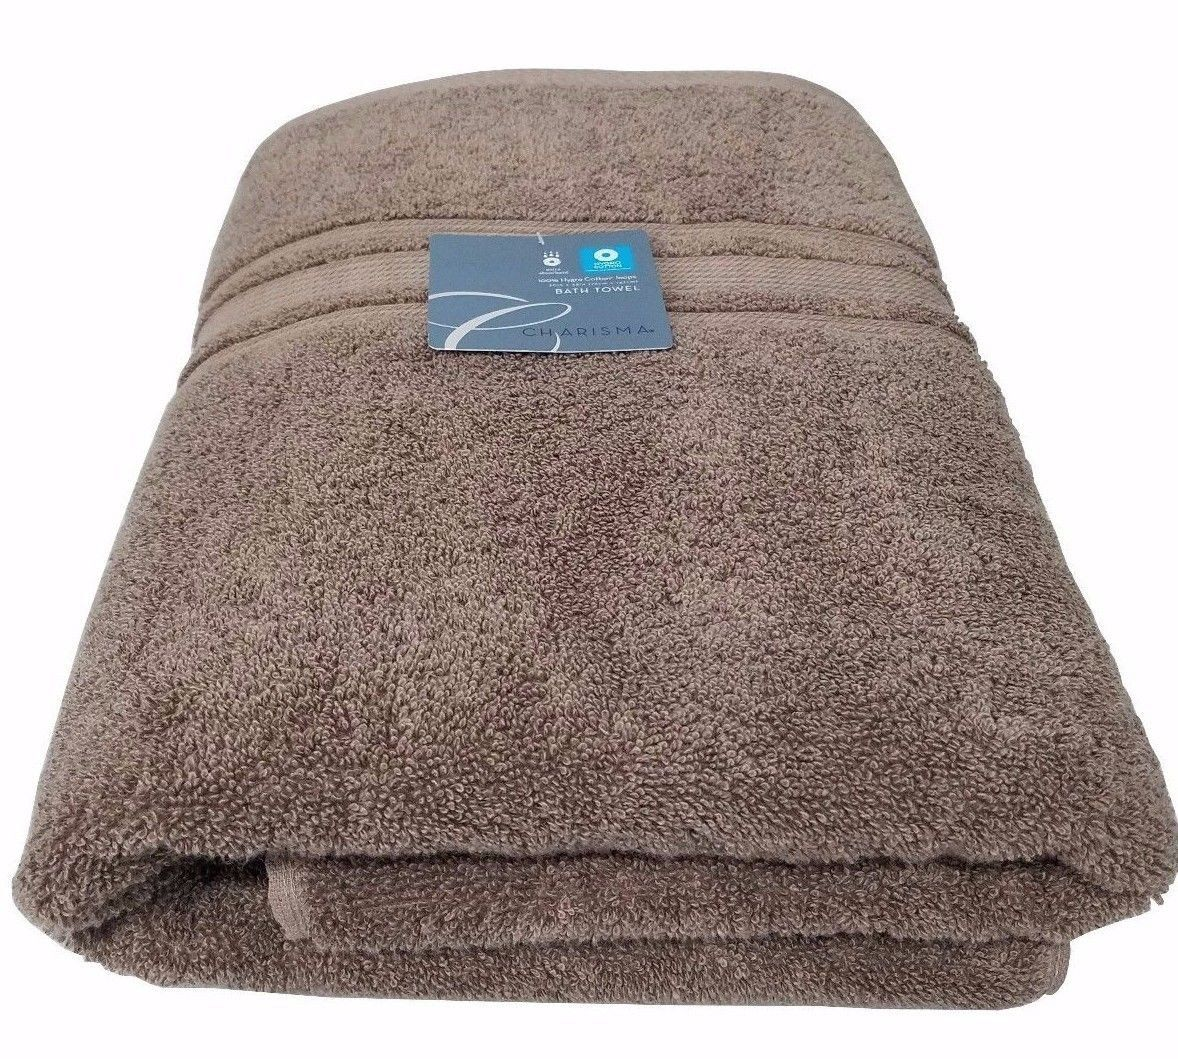 Charisma Bath Towel 100 Hygro Cotton Loops 30x58 Extra Absorbent Cobblestone Bath Towels Towel Cotton